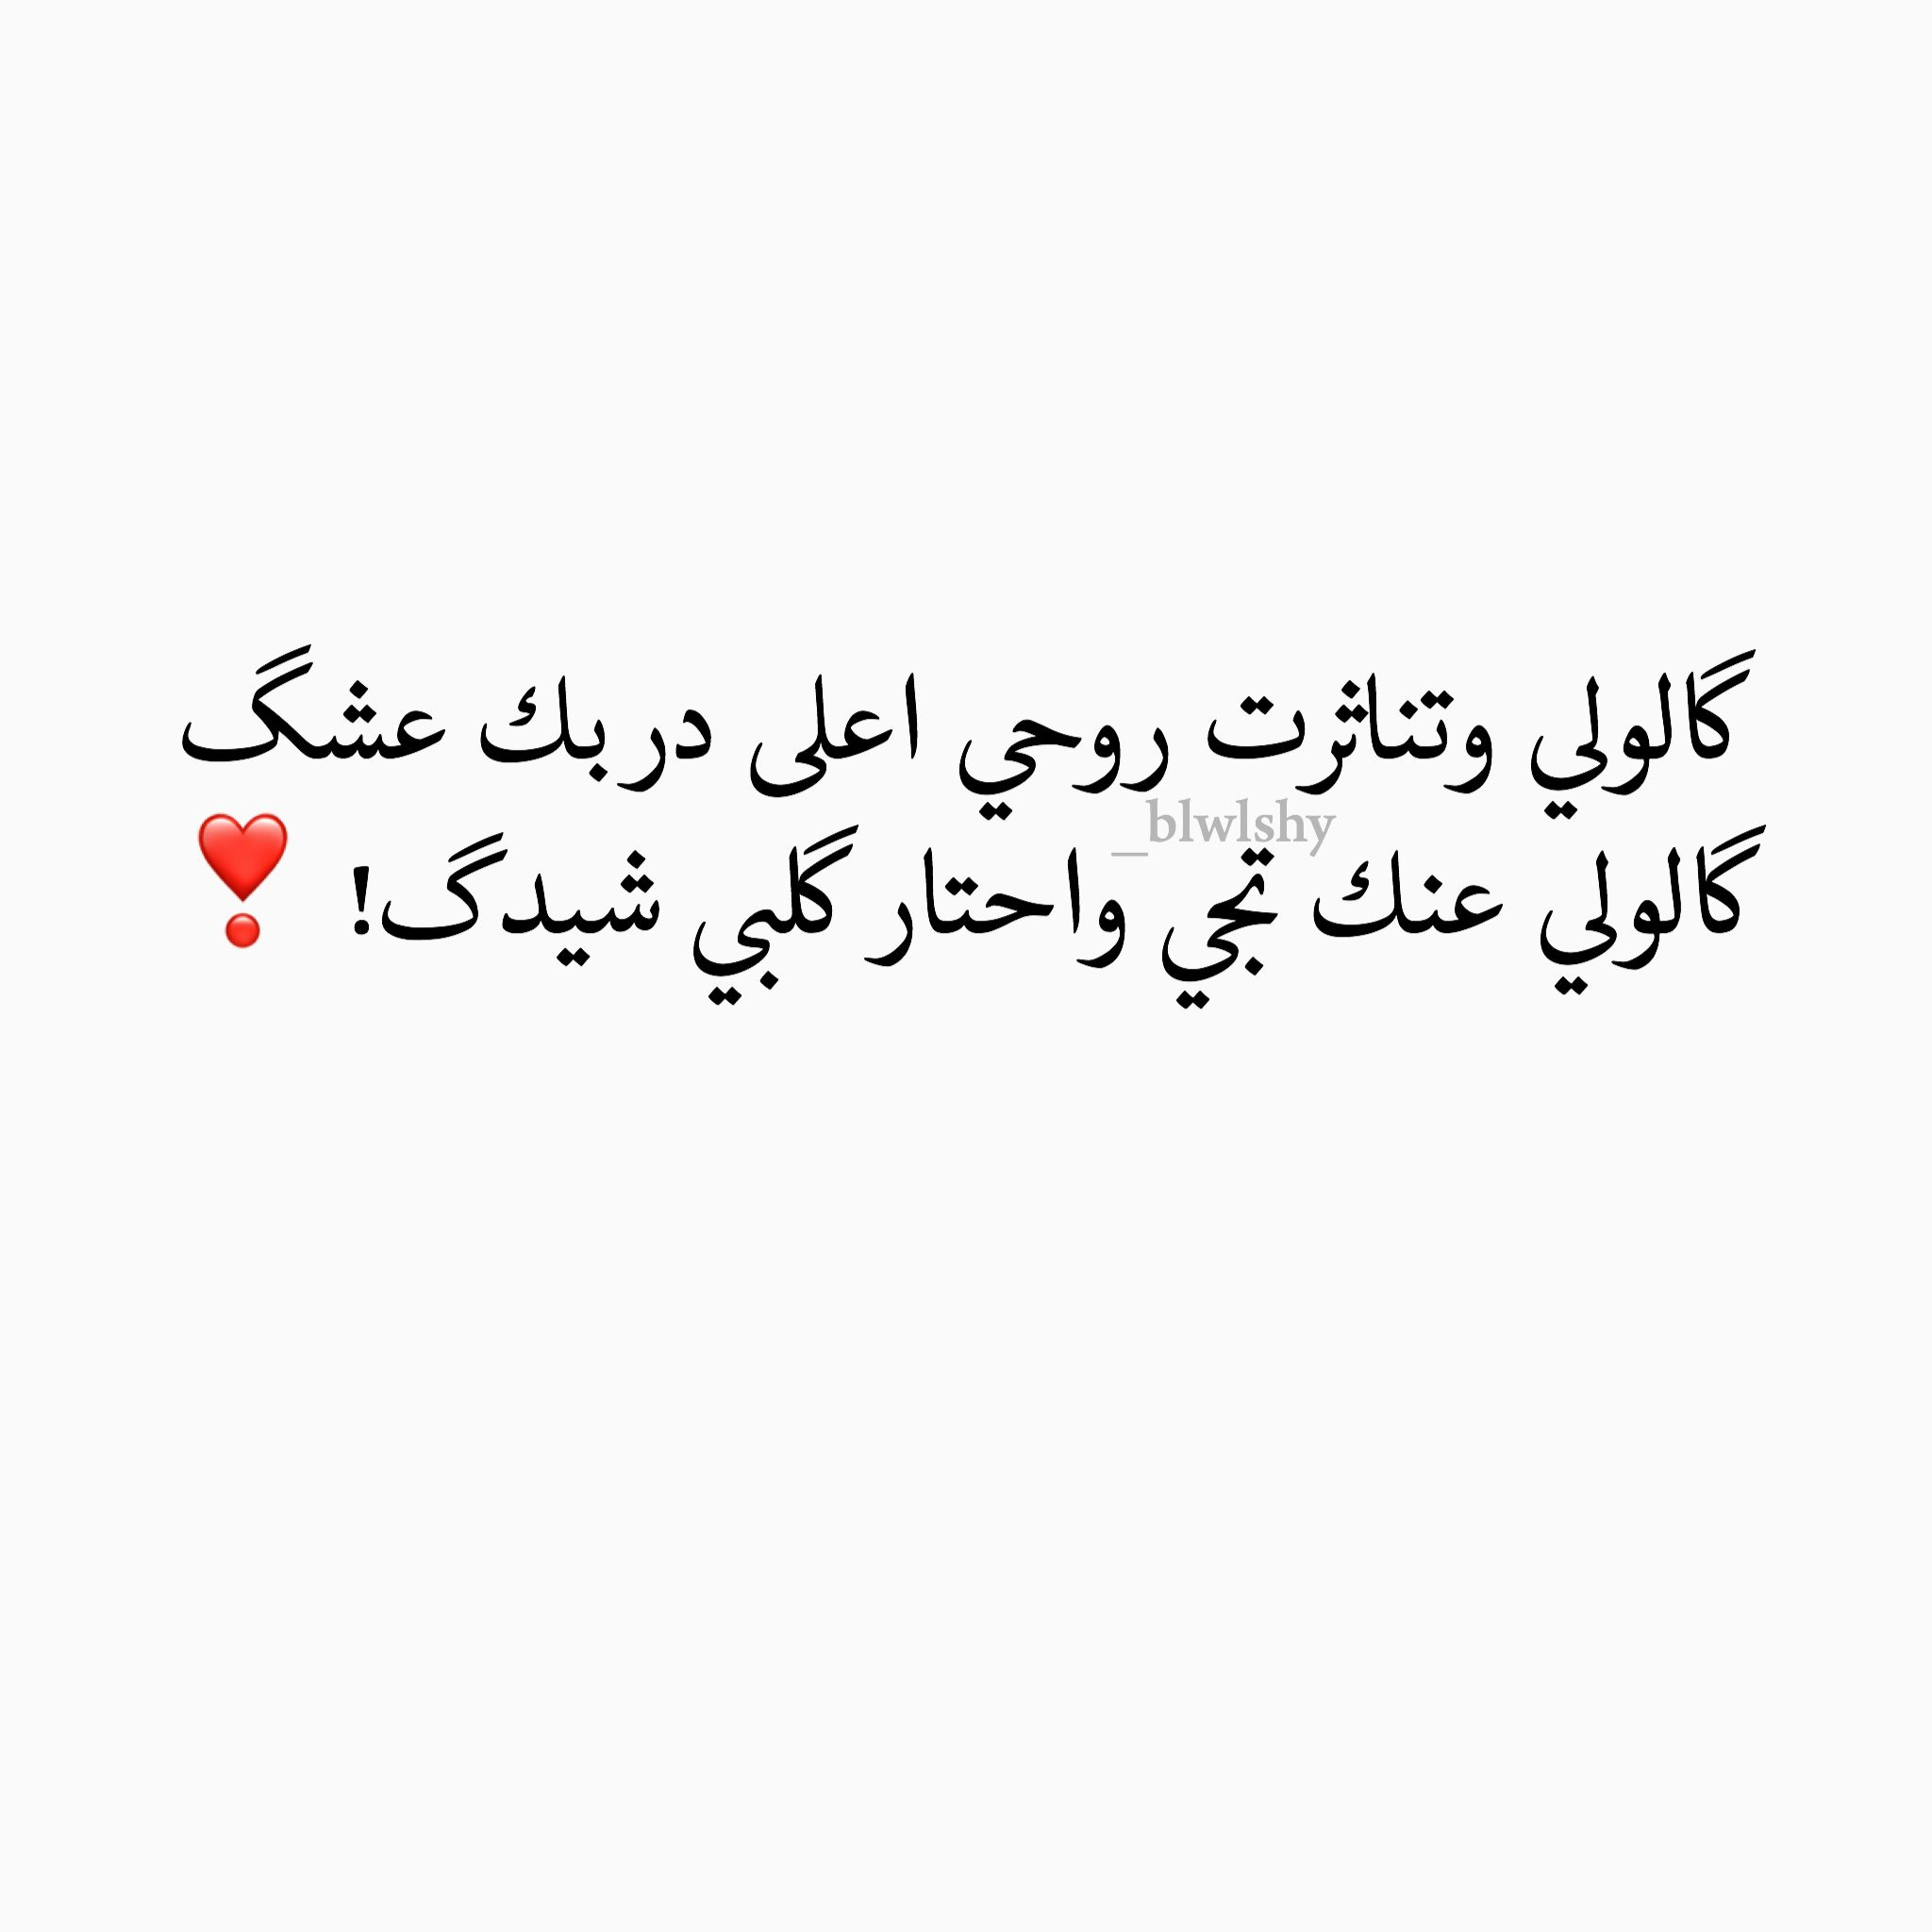 Pin By Ali Lateef On شعر شعبي عراقي Funny Arabic Quotes Love Quotes Funny Texts